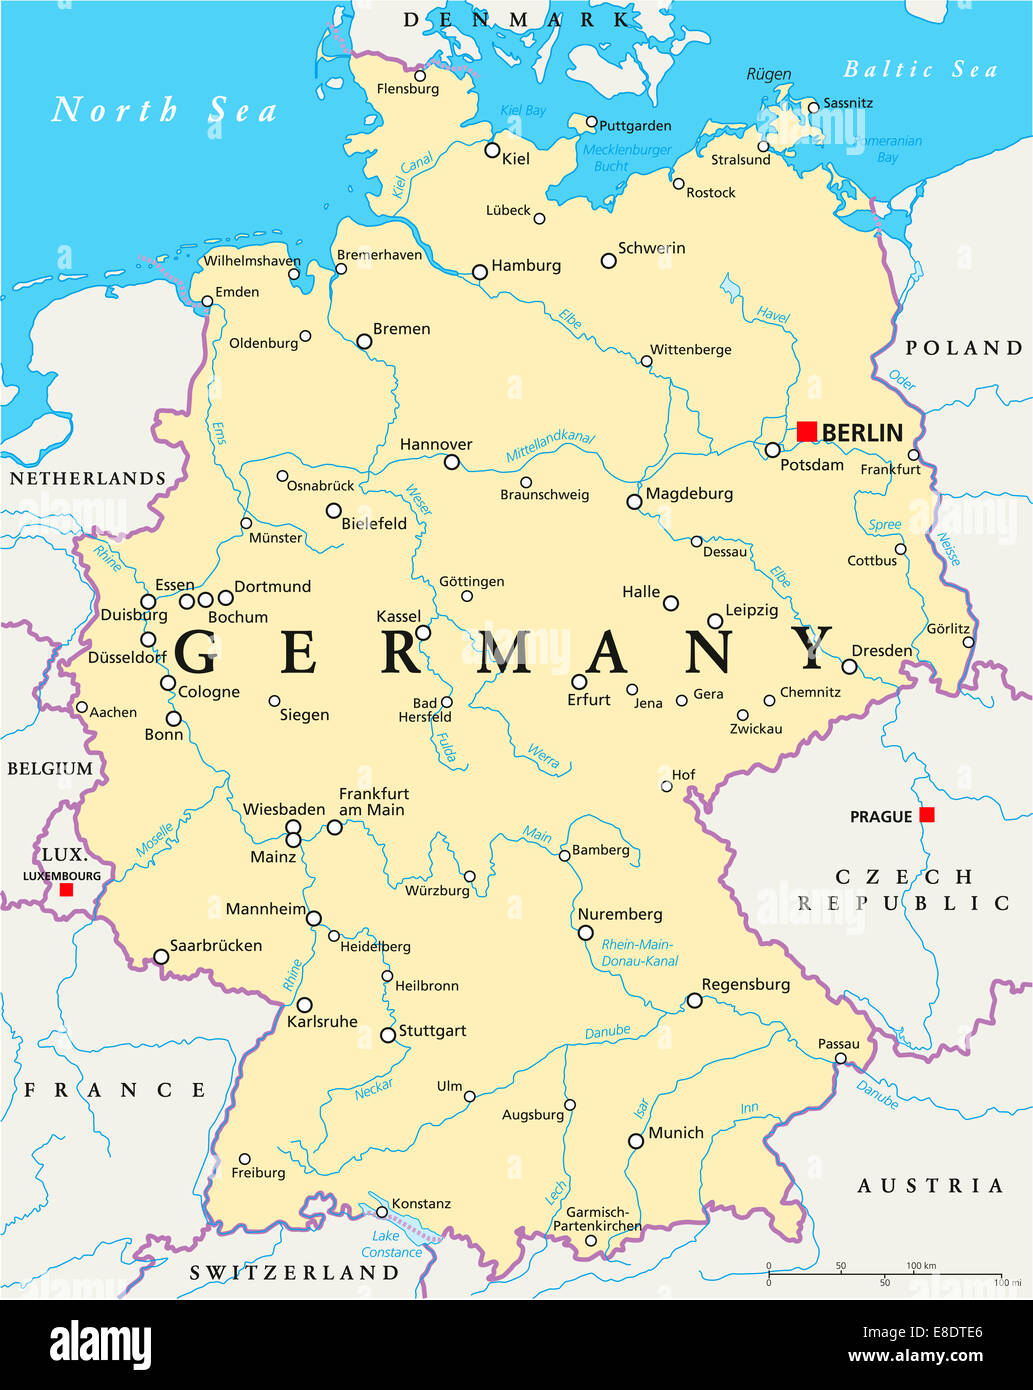 Map Of Berlin Germany Germany Political Map with capital Berlin, national borders, most